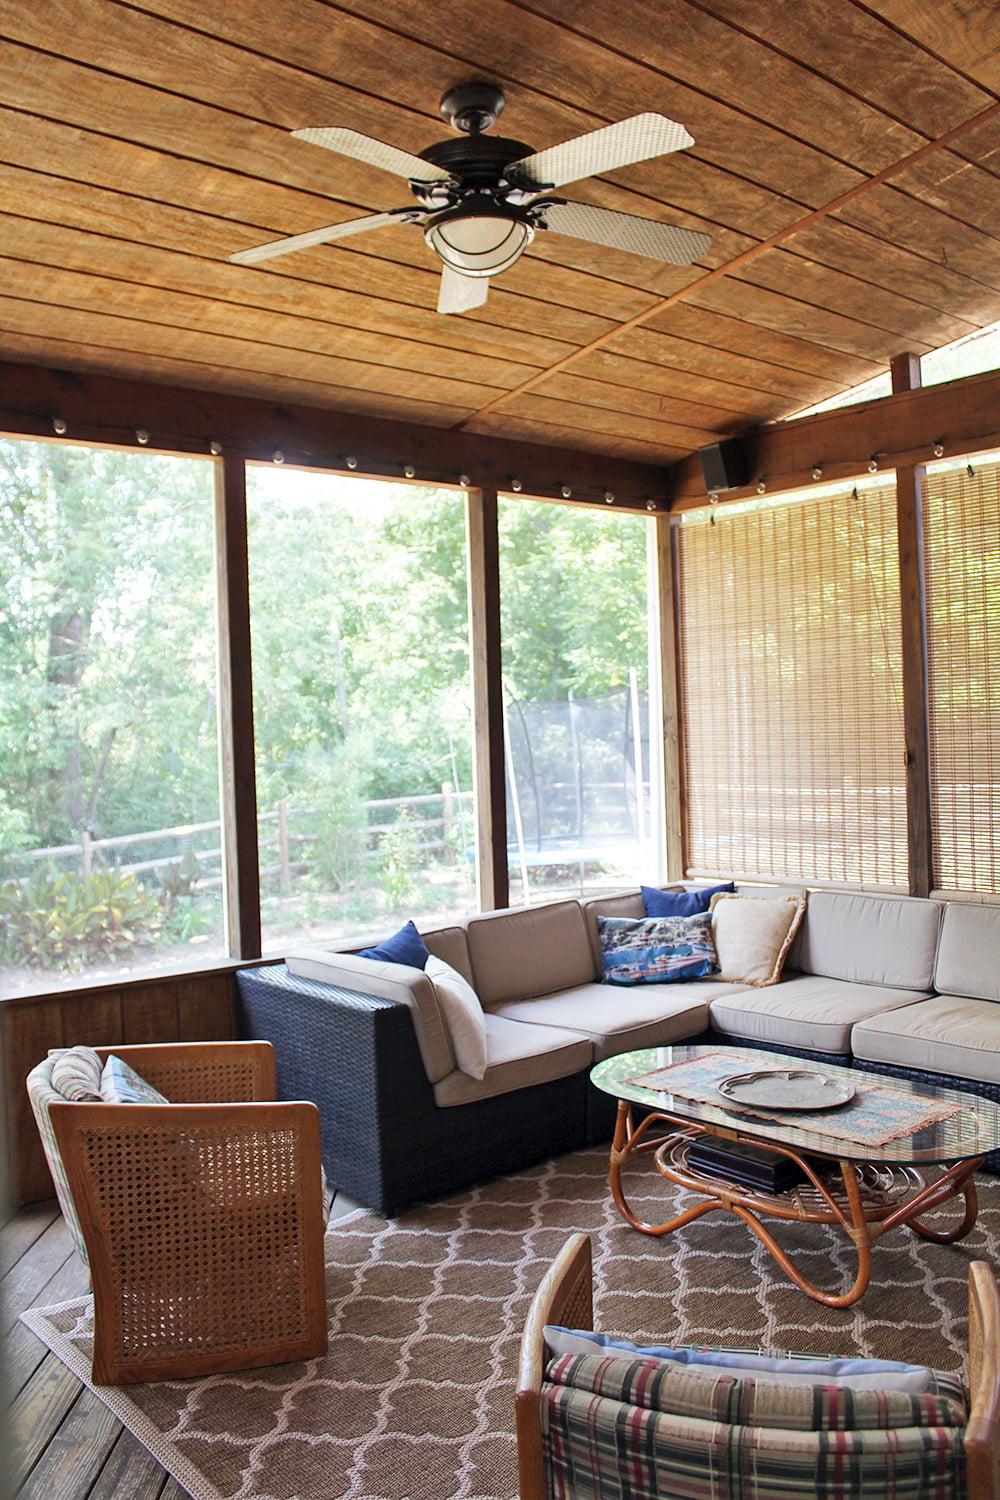 10 Screened In Back Porch Ideas